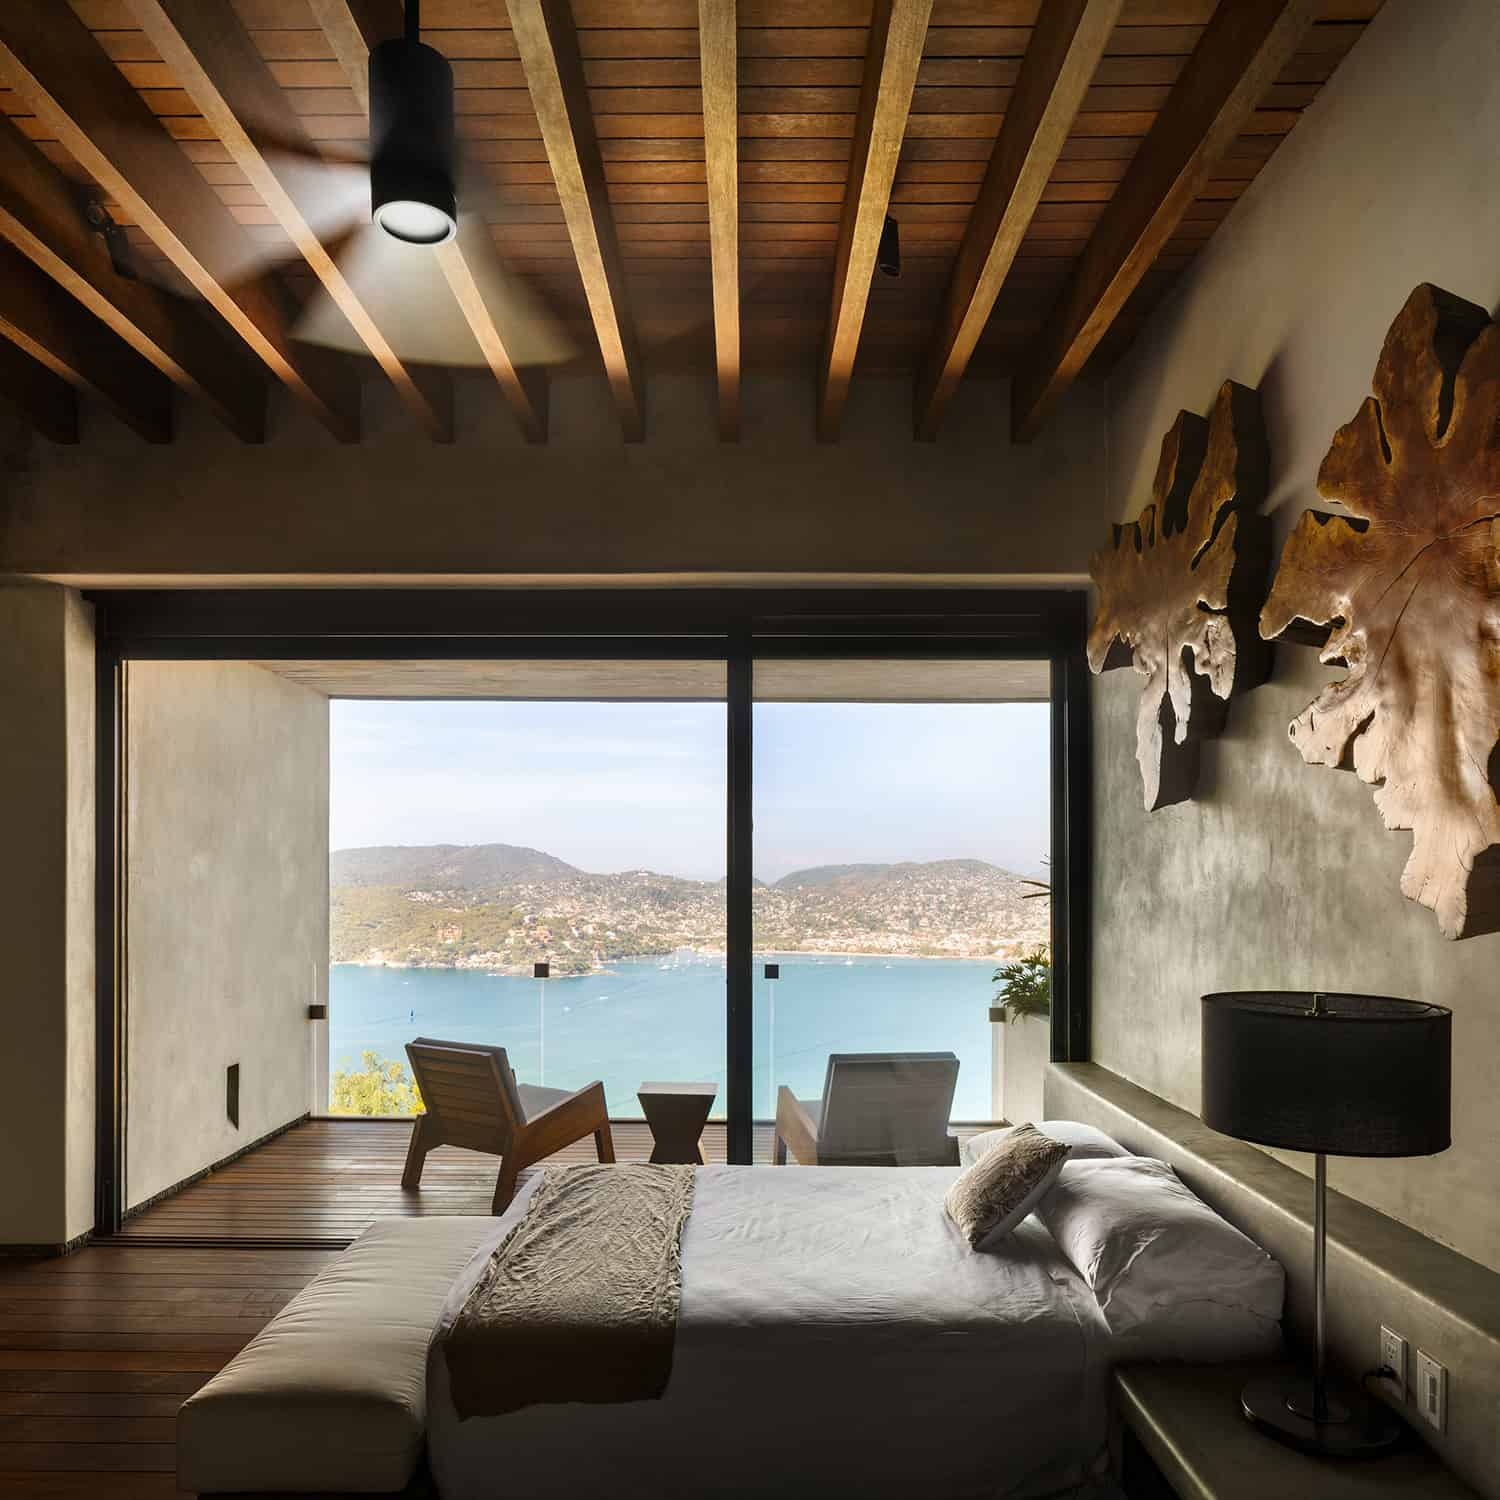 tropical-minimalist-bedroom-with-a-view-over-pacific-ocean